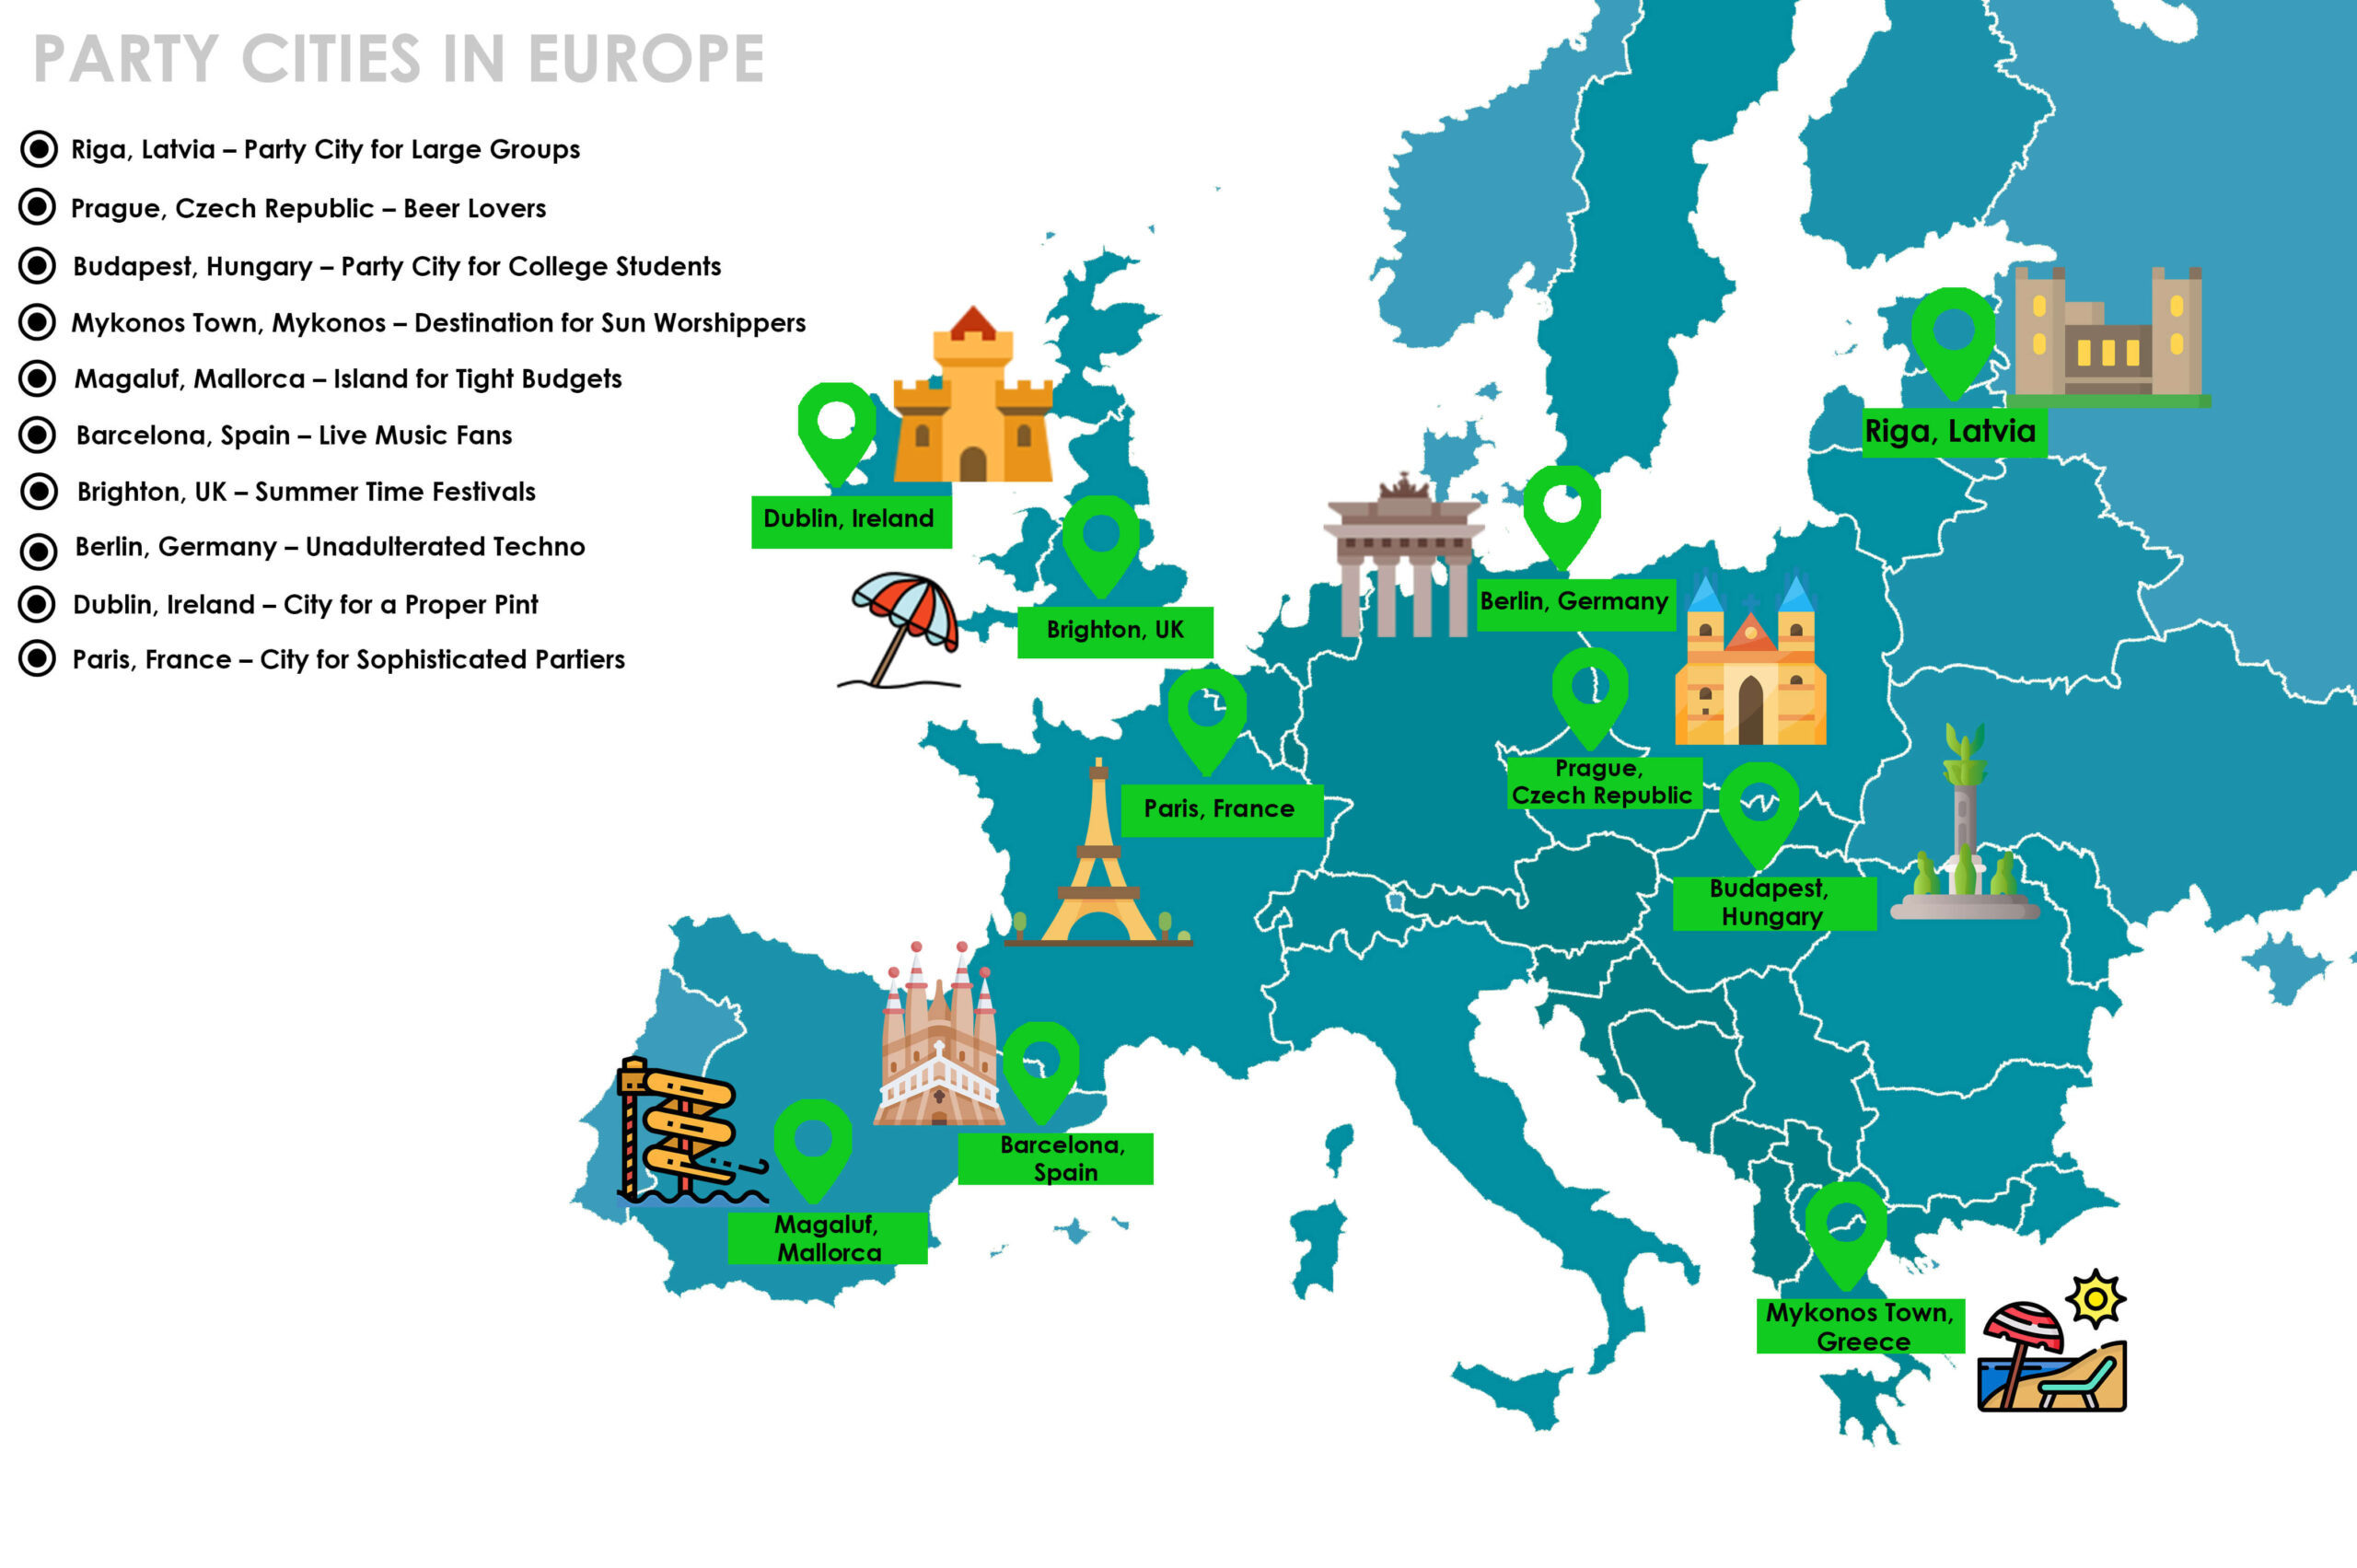 Map of Party Cities in Europe